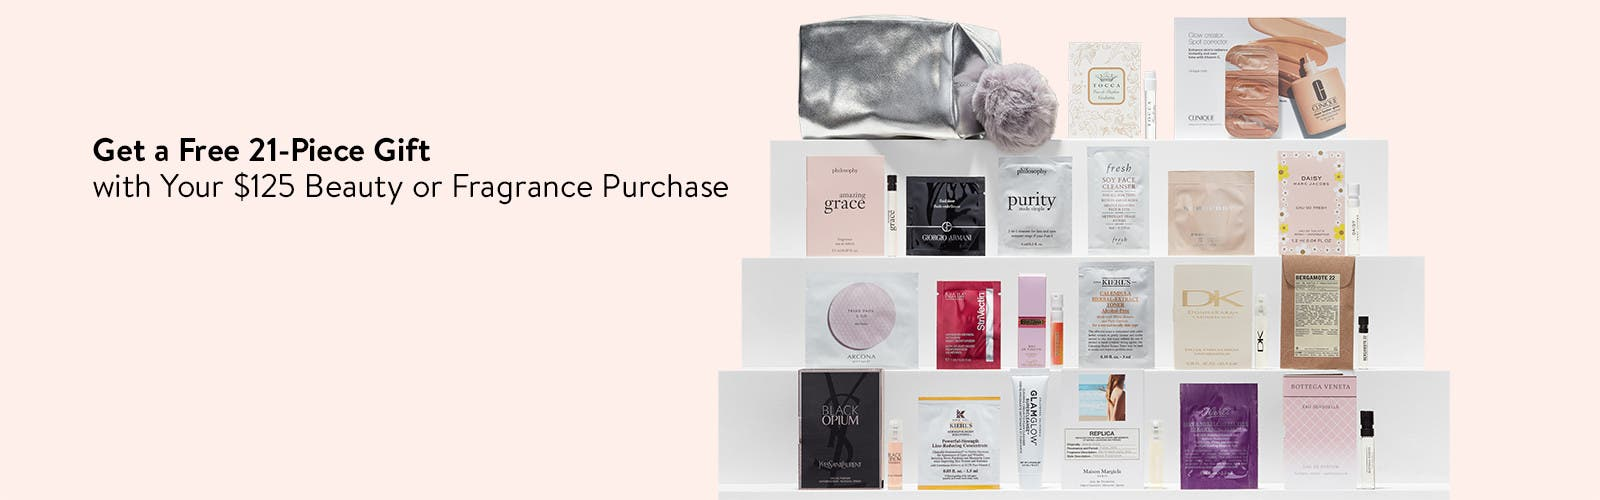 Get a free 21-piece gift with $125 beauty or fragrance purchase.